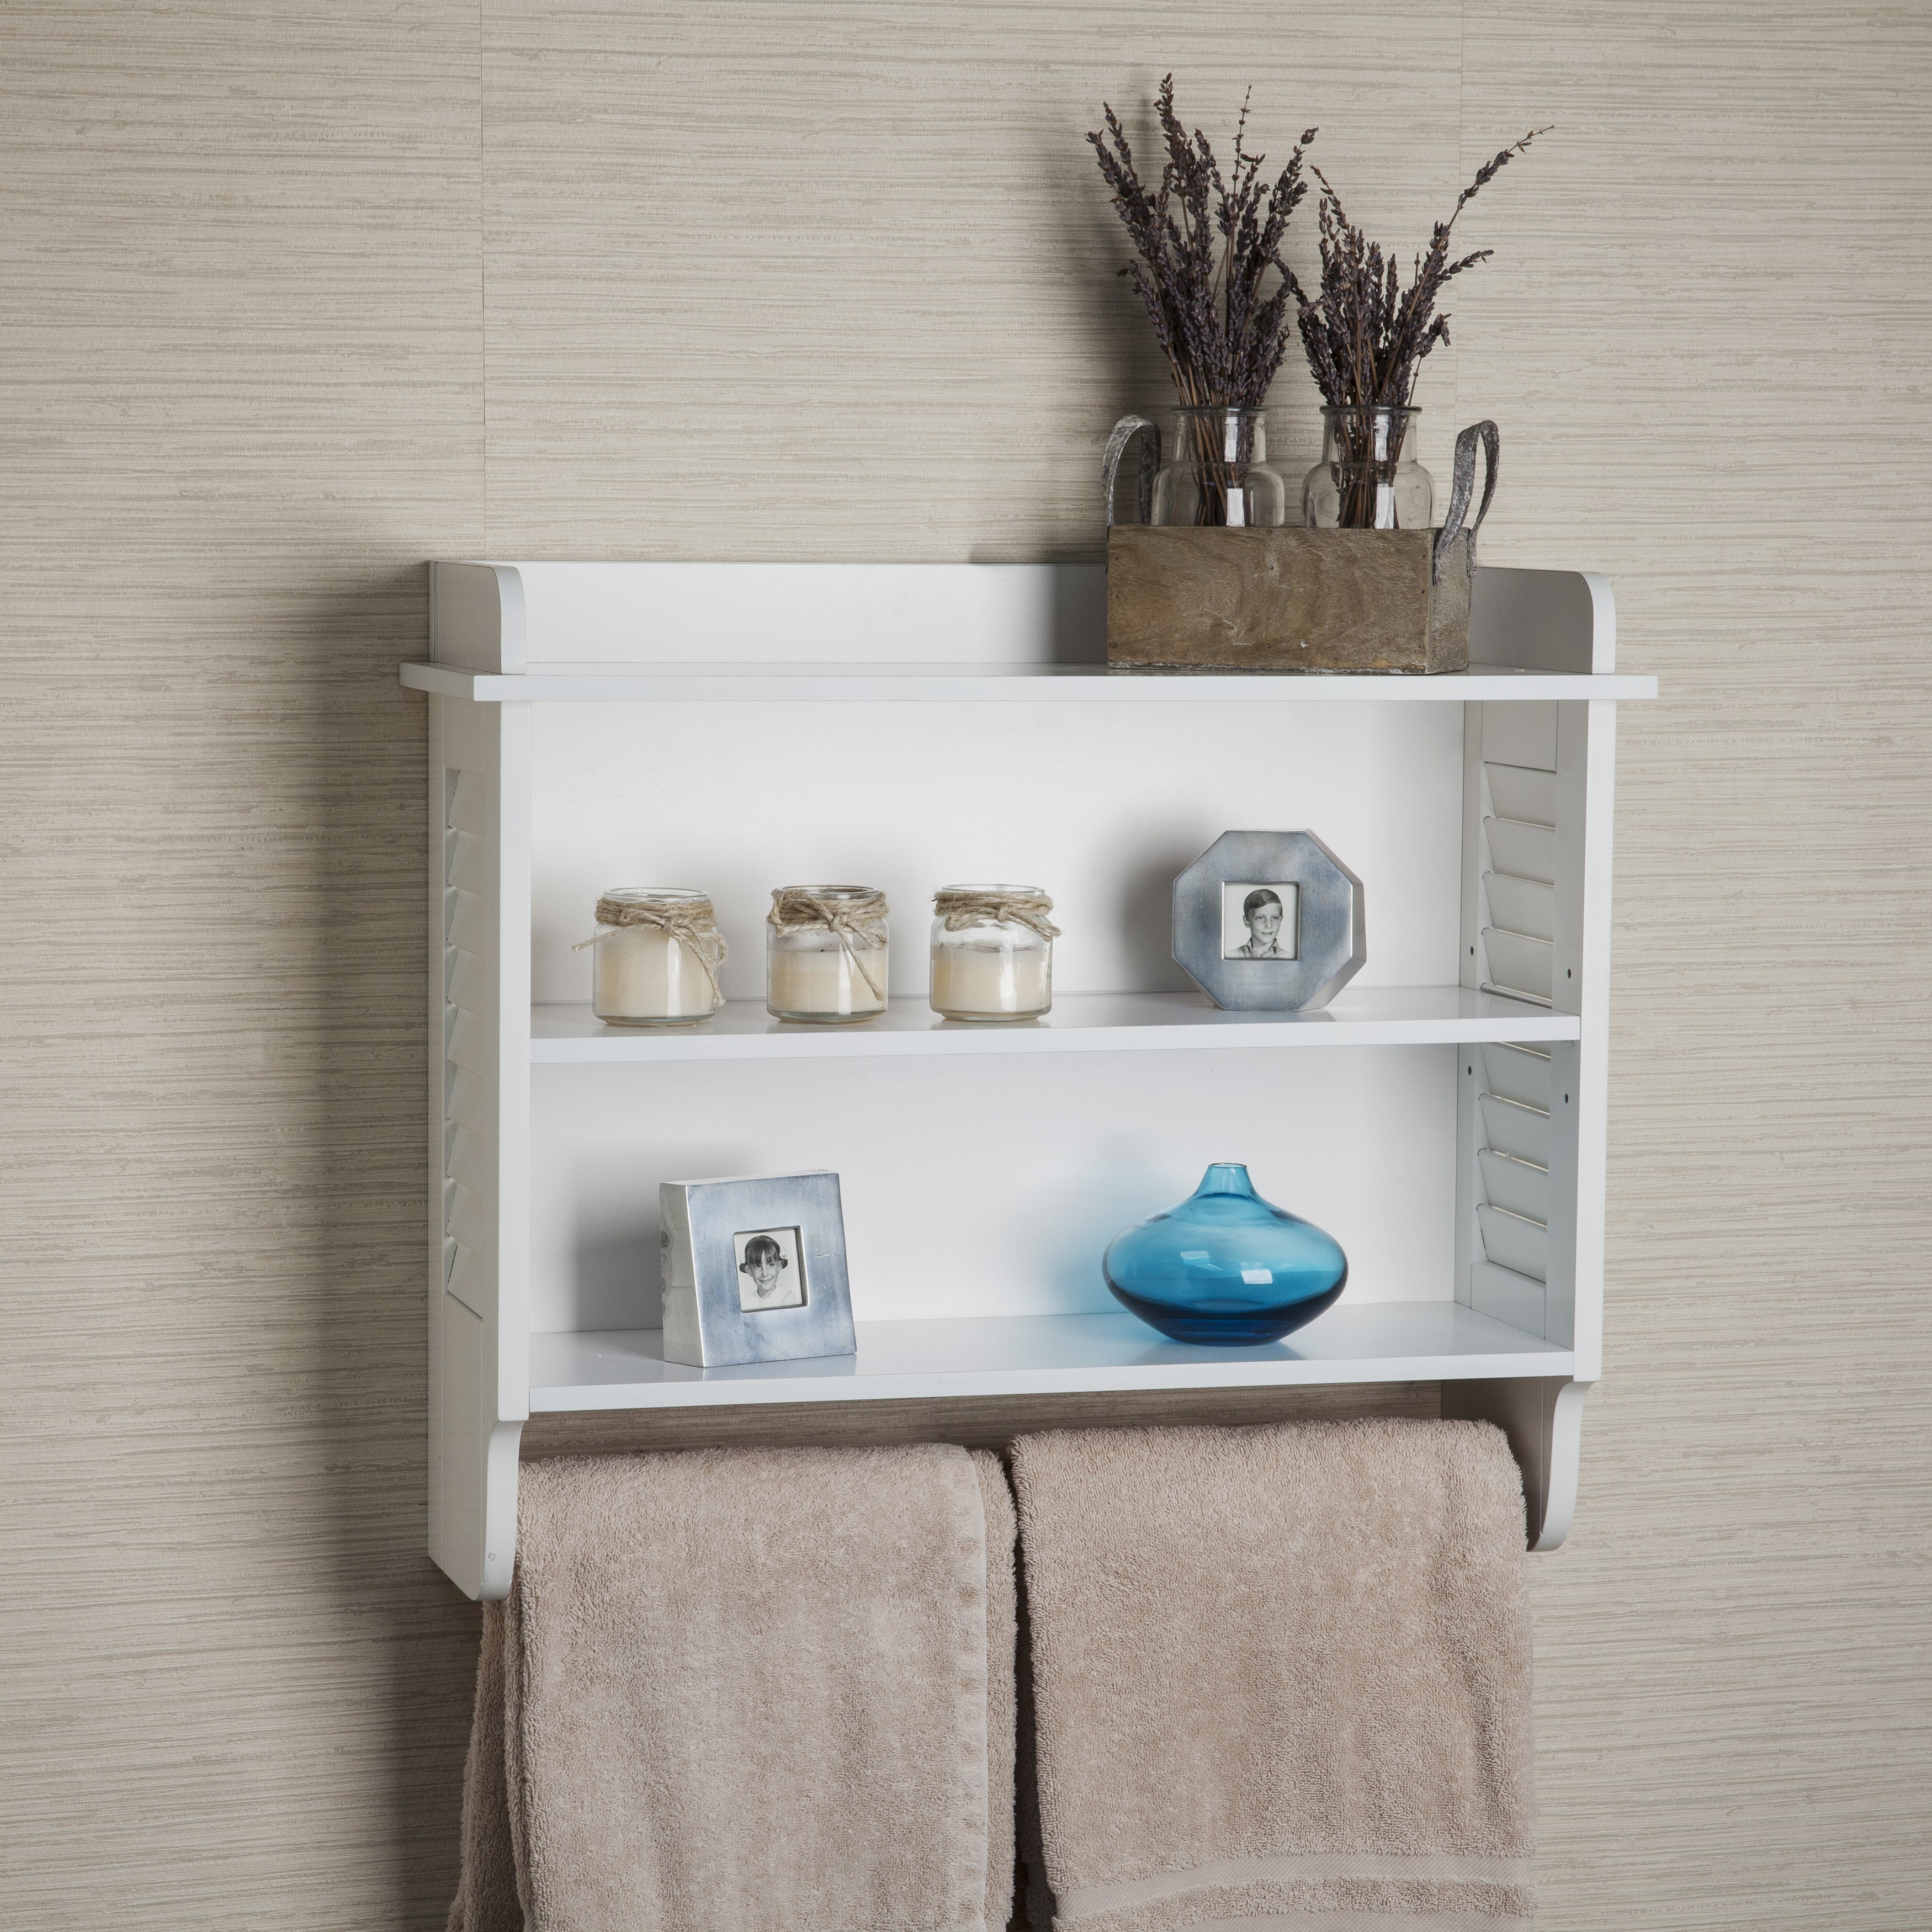 Shop Danya B. White Bath Cabinet with Adjustable Shelf and Towel Bar ...